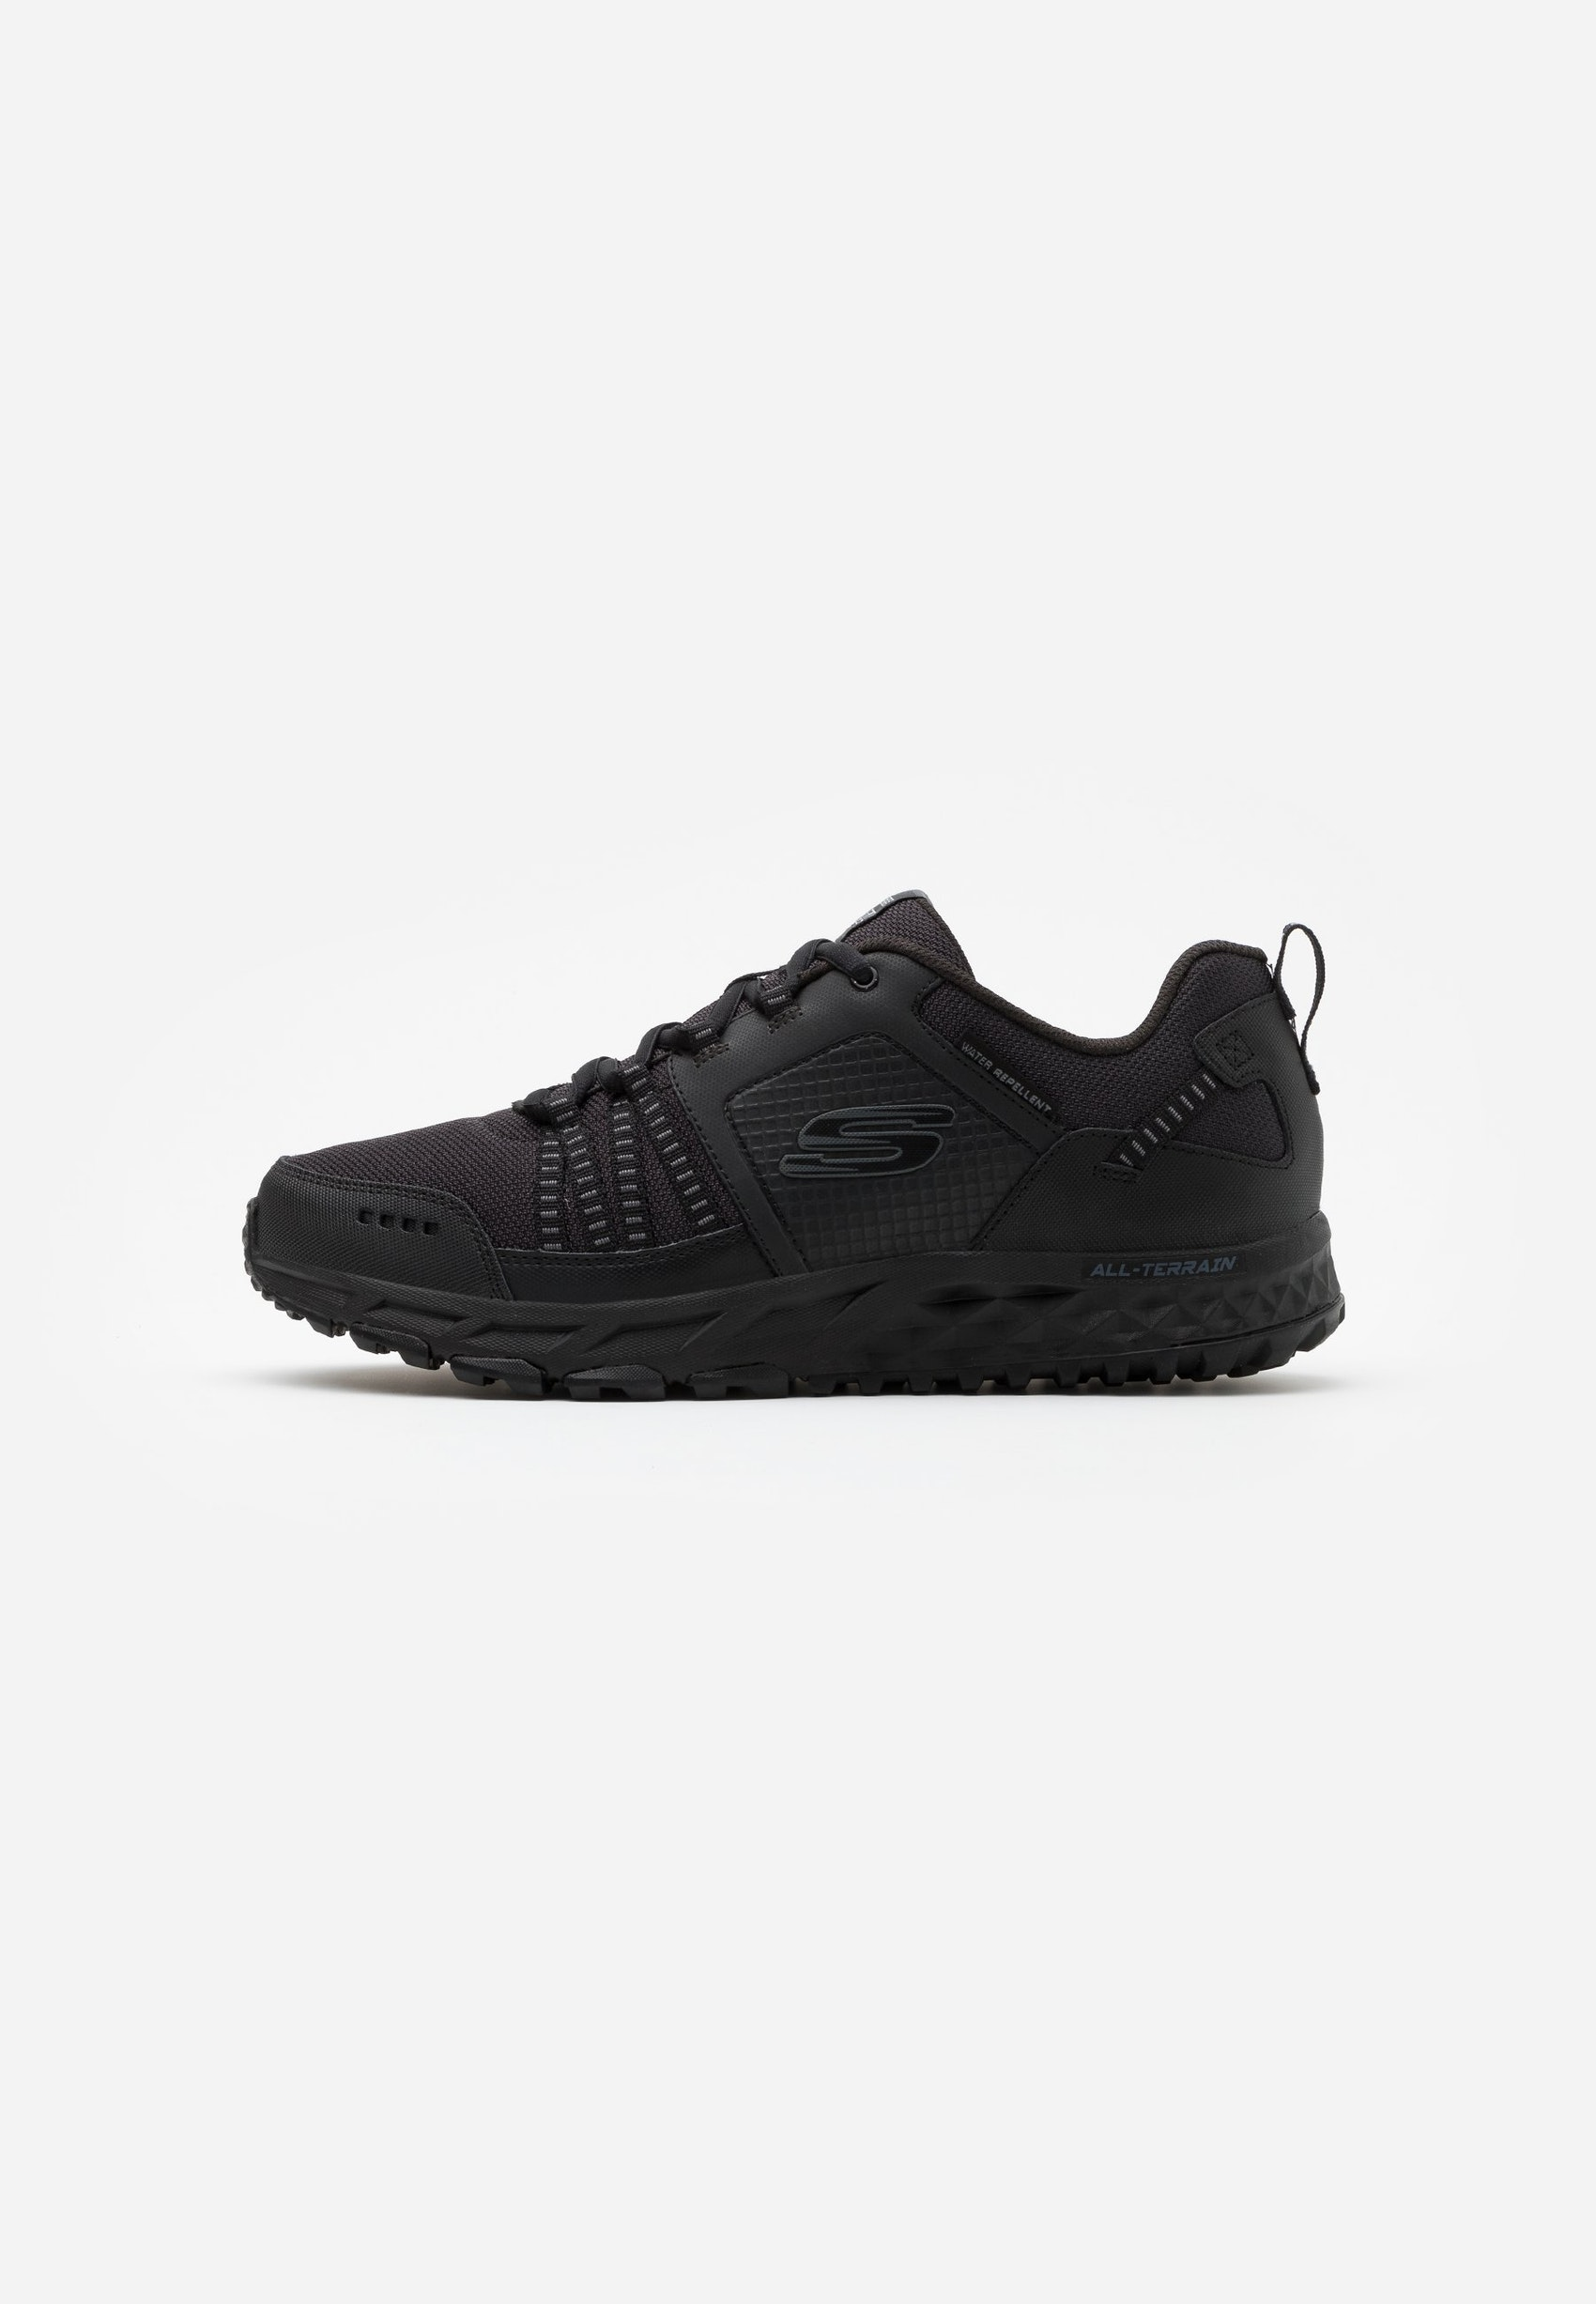 CHAUSSURES MODE SKECHERS TRACK HOMME